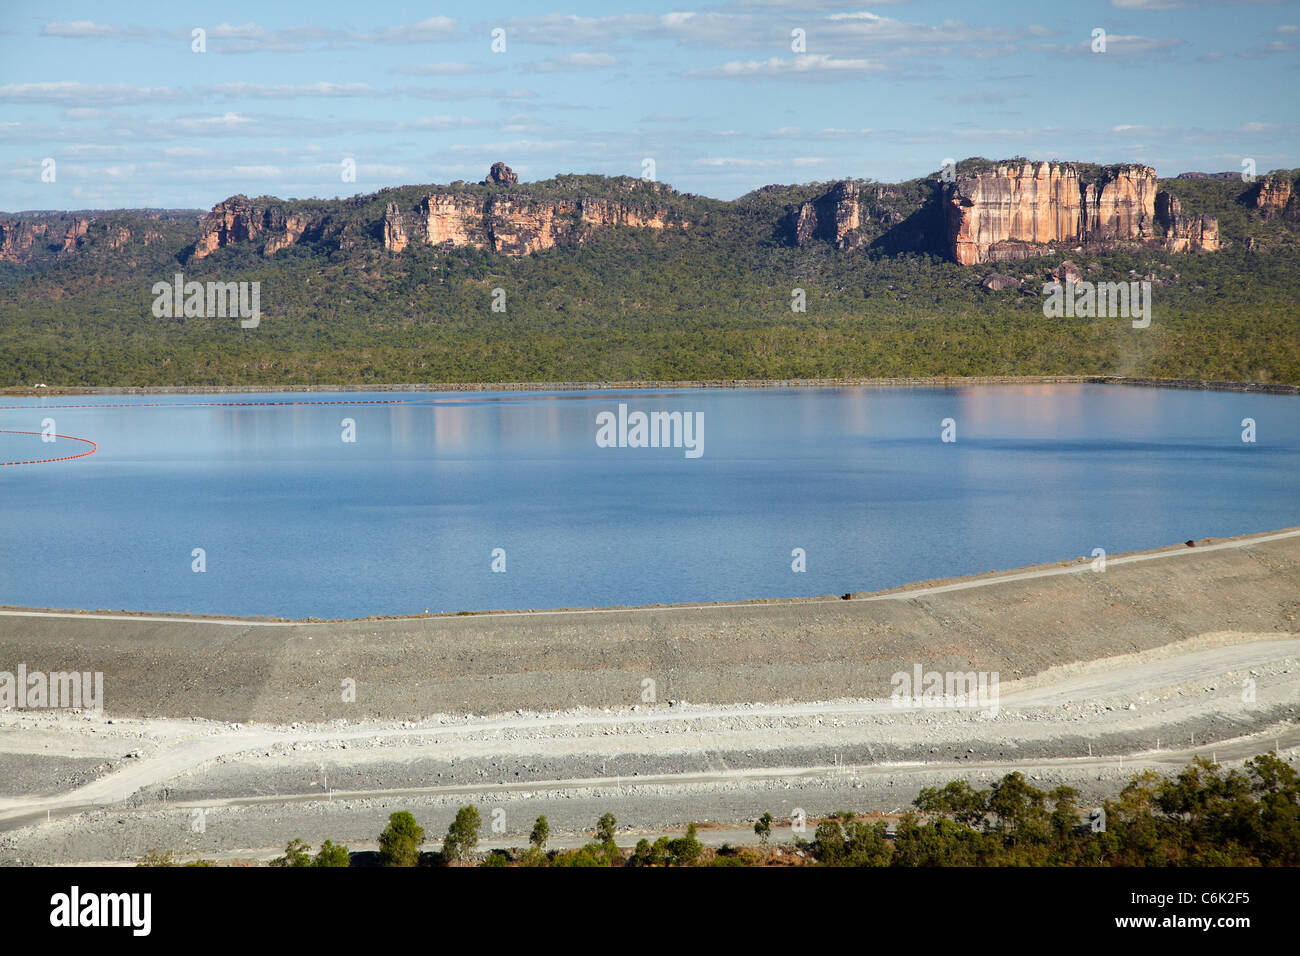 Presa de relaves mina de uranio ranger parque nacional for Design of evaporation pond